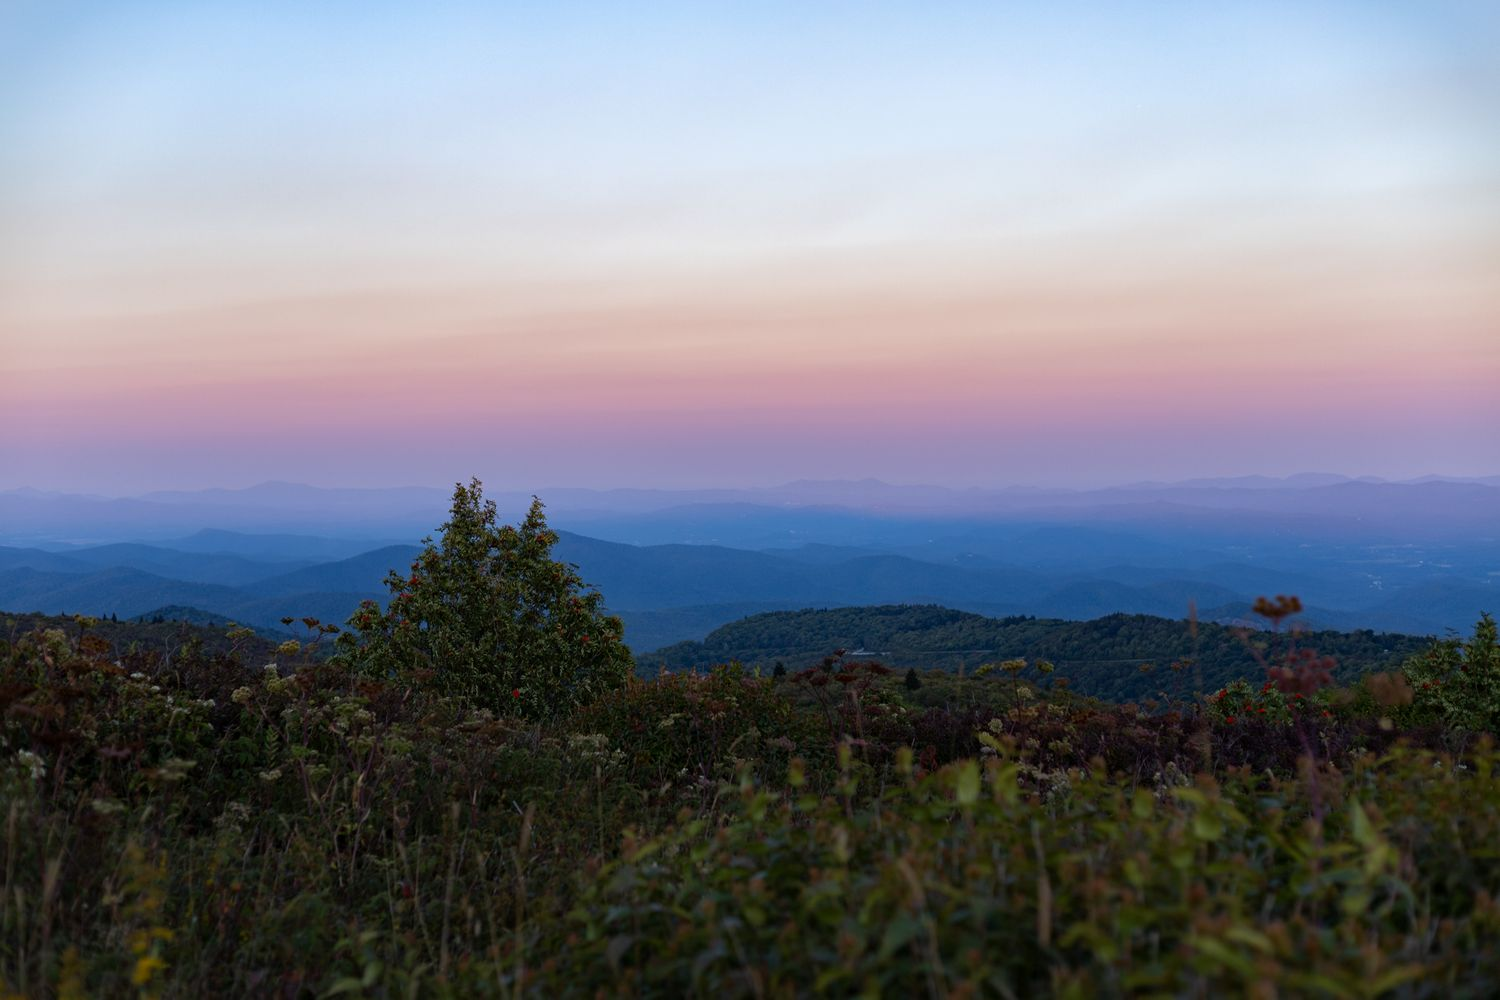 A sunset view of the Blue Ridge Parkway near Asheville, NC.